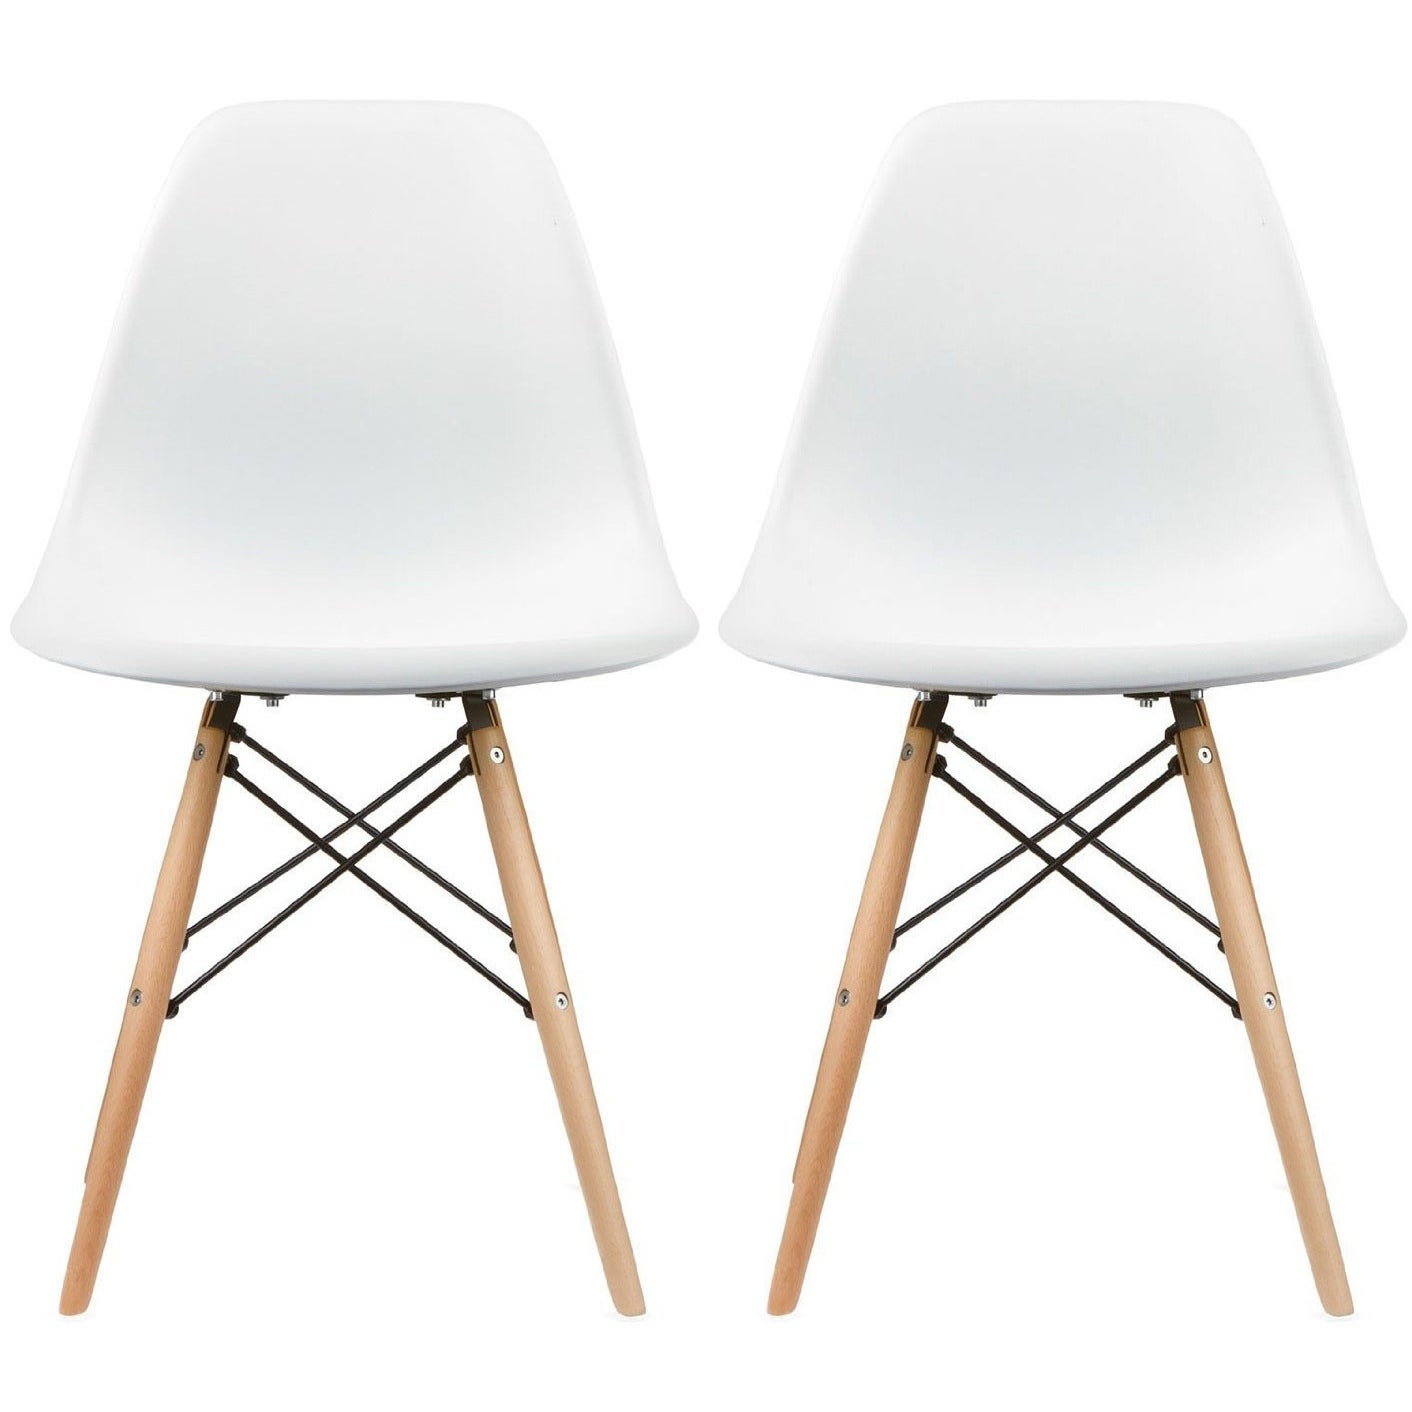 2xhome Set Of 2 White Molded Shell Designer Side Plastic Eiffel Chairs Wood Legs Dining Room Living Office Conference Dsw On Free Shipping